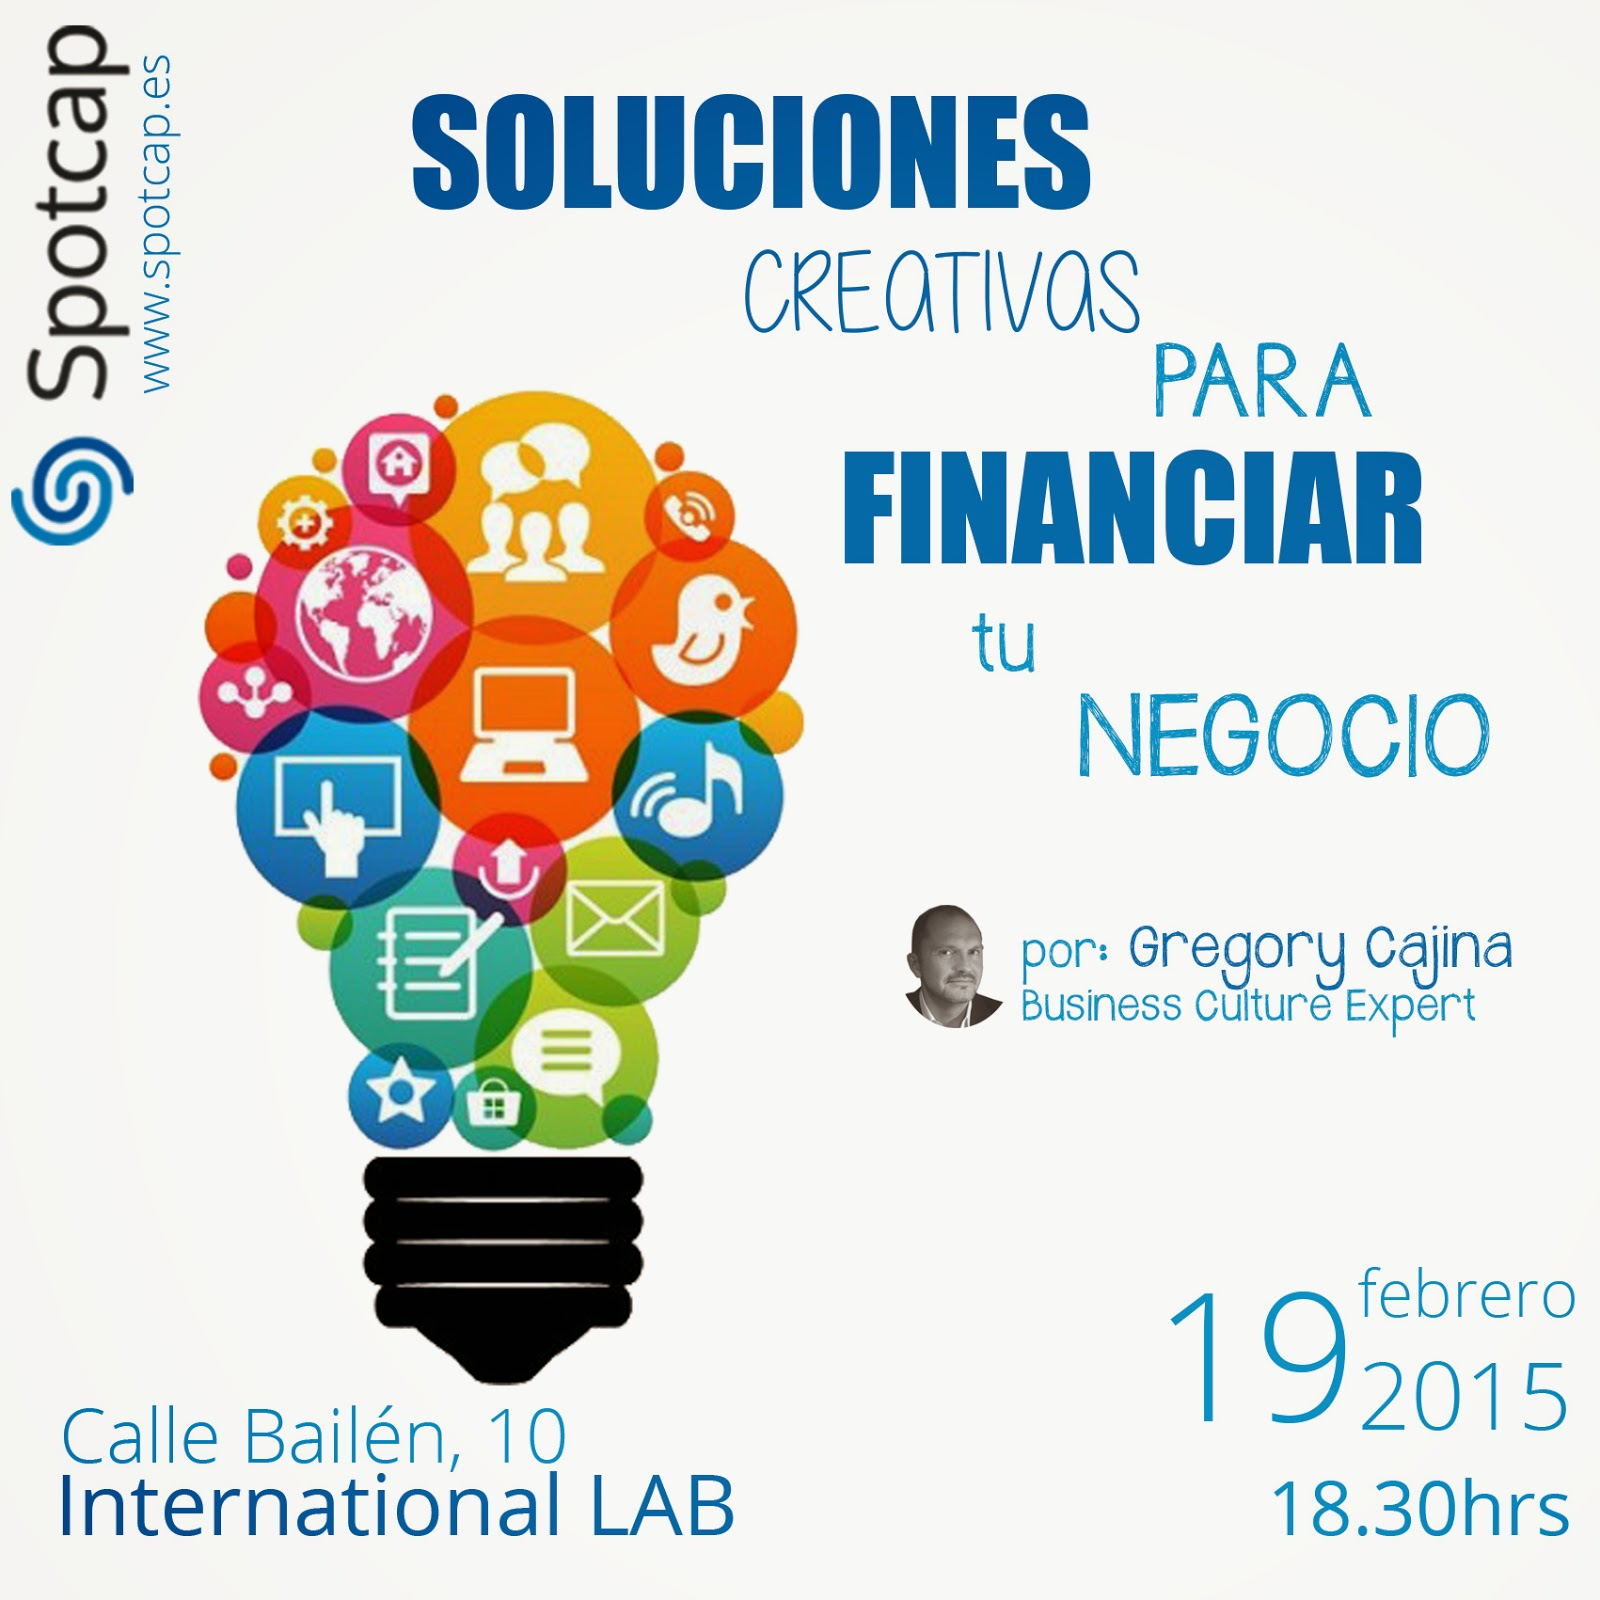 https://welcu.com/isabel-calderon-izquierdo/meet-up-spotcap